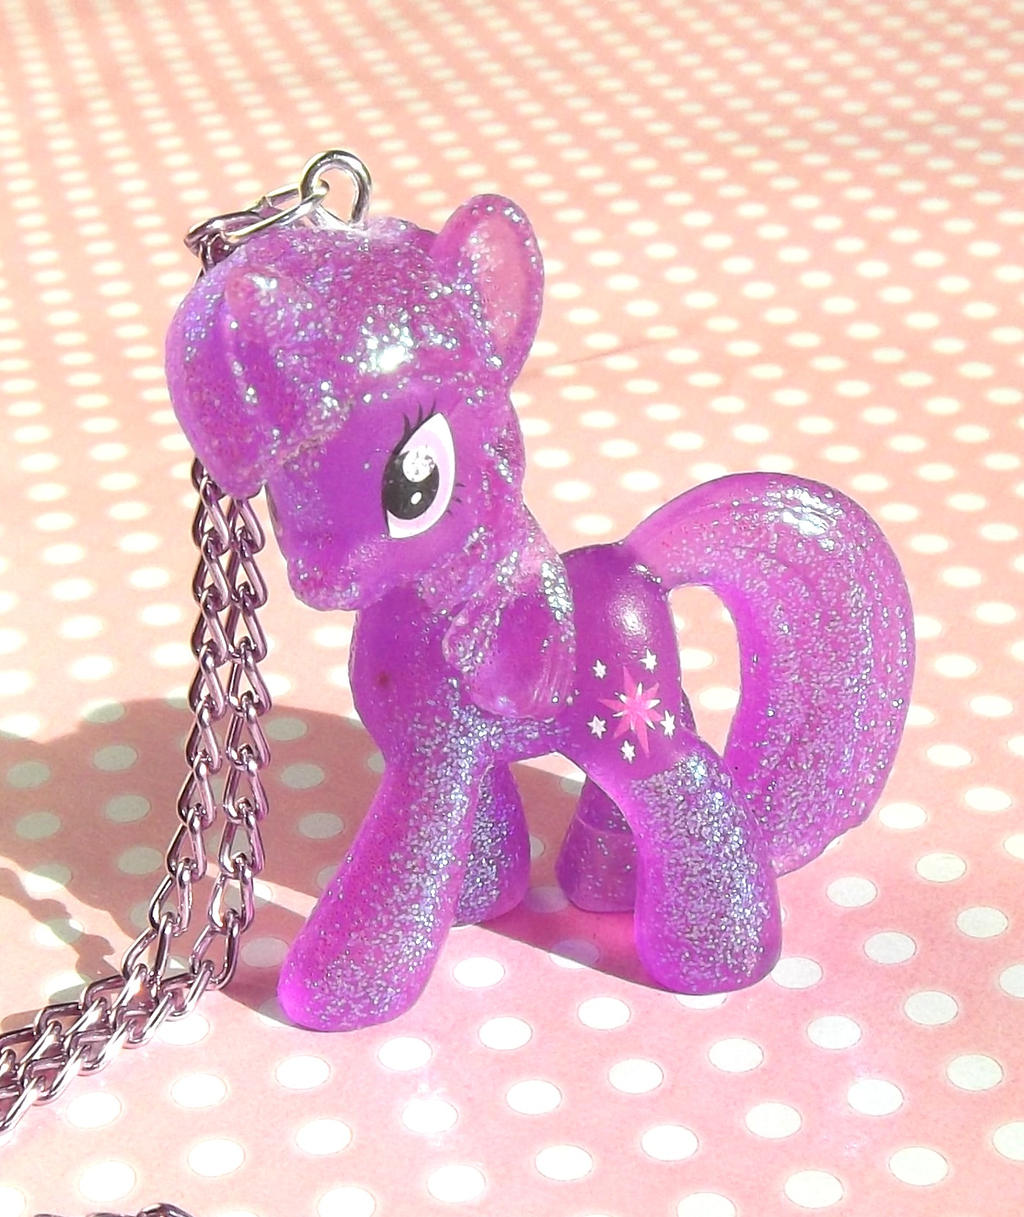 My little pony friendship is magic necklaces by kawaiimoon24 on sold twilight sparkle my little pony necklace by kawaiimoon24 mozeypictures Images